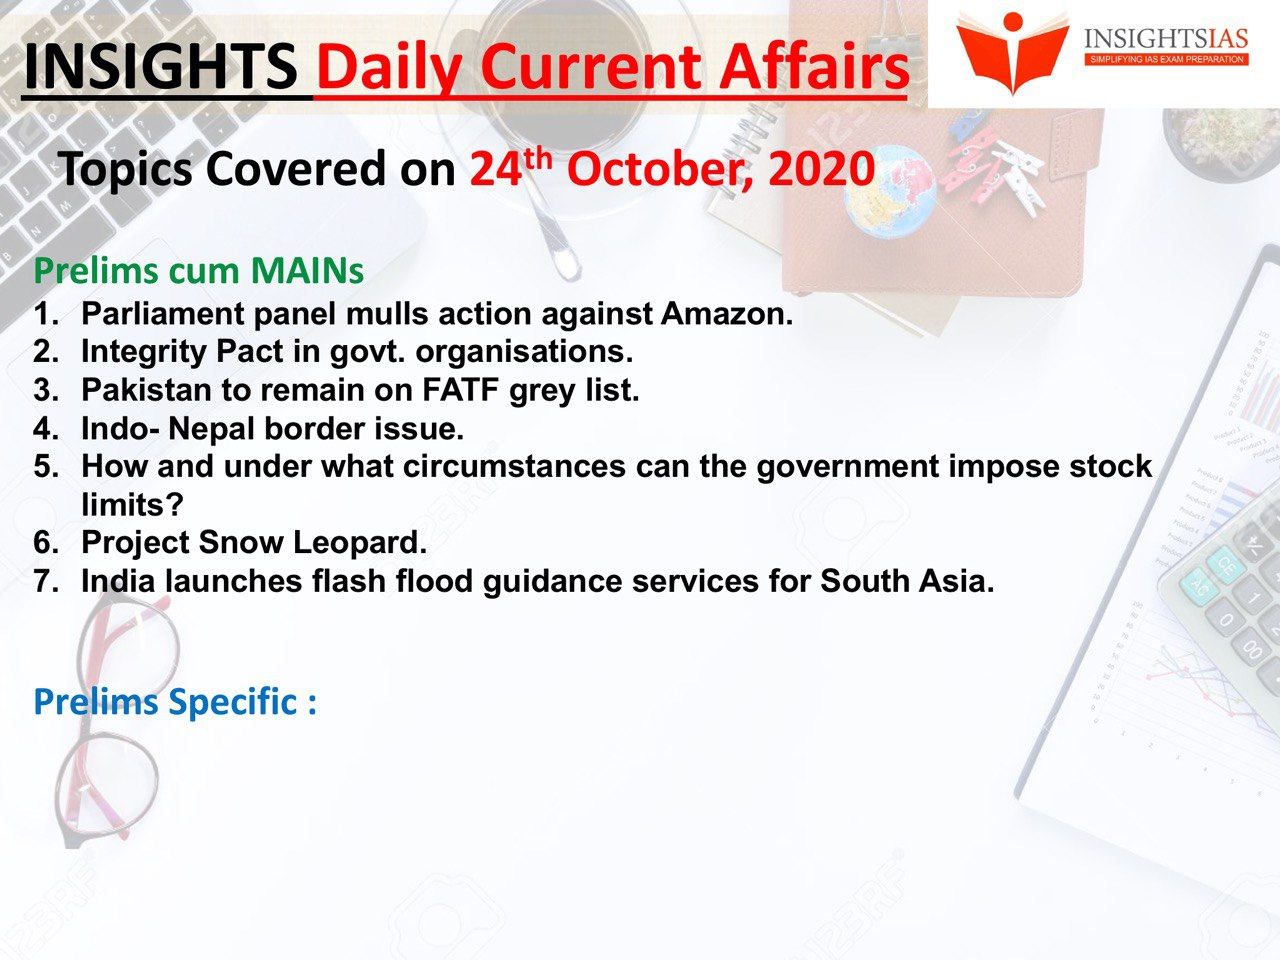 current affairs, current events, current gk, insights ias current affairs, upsc ias current affairs